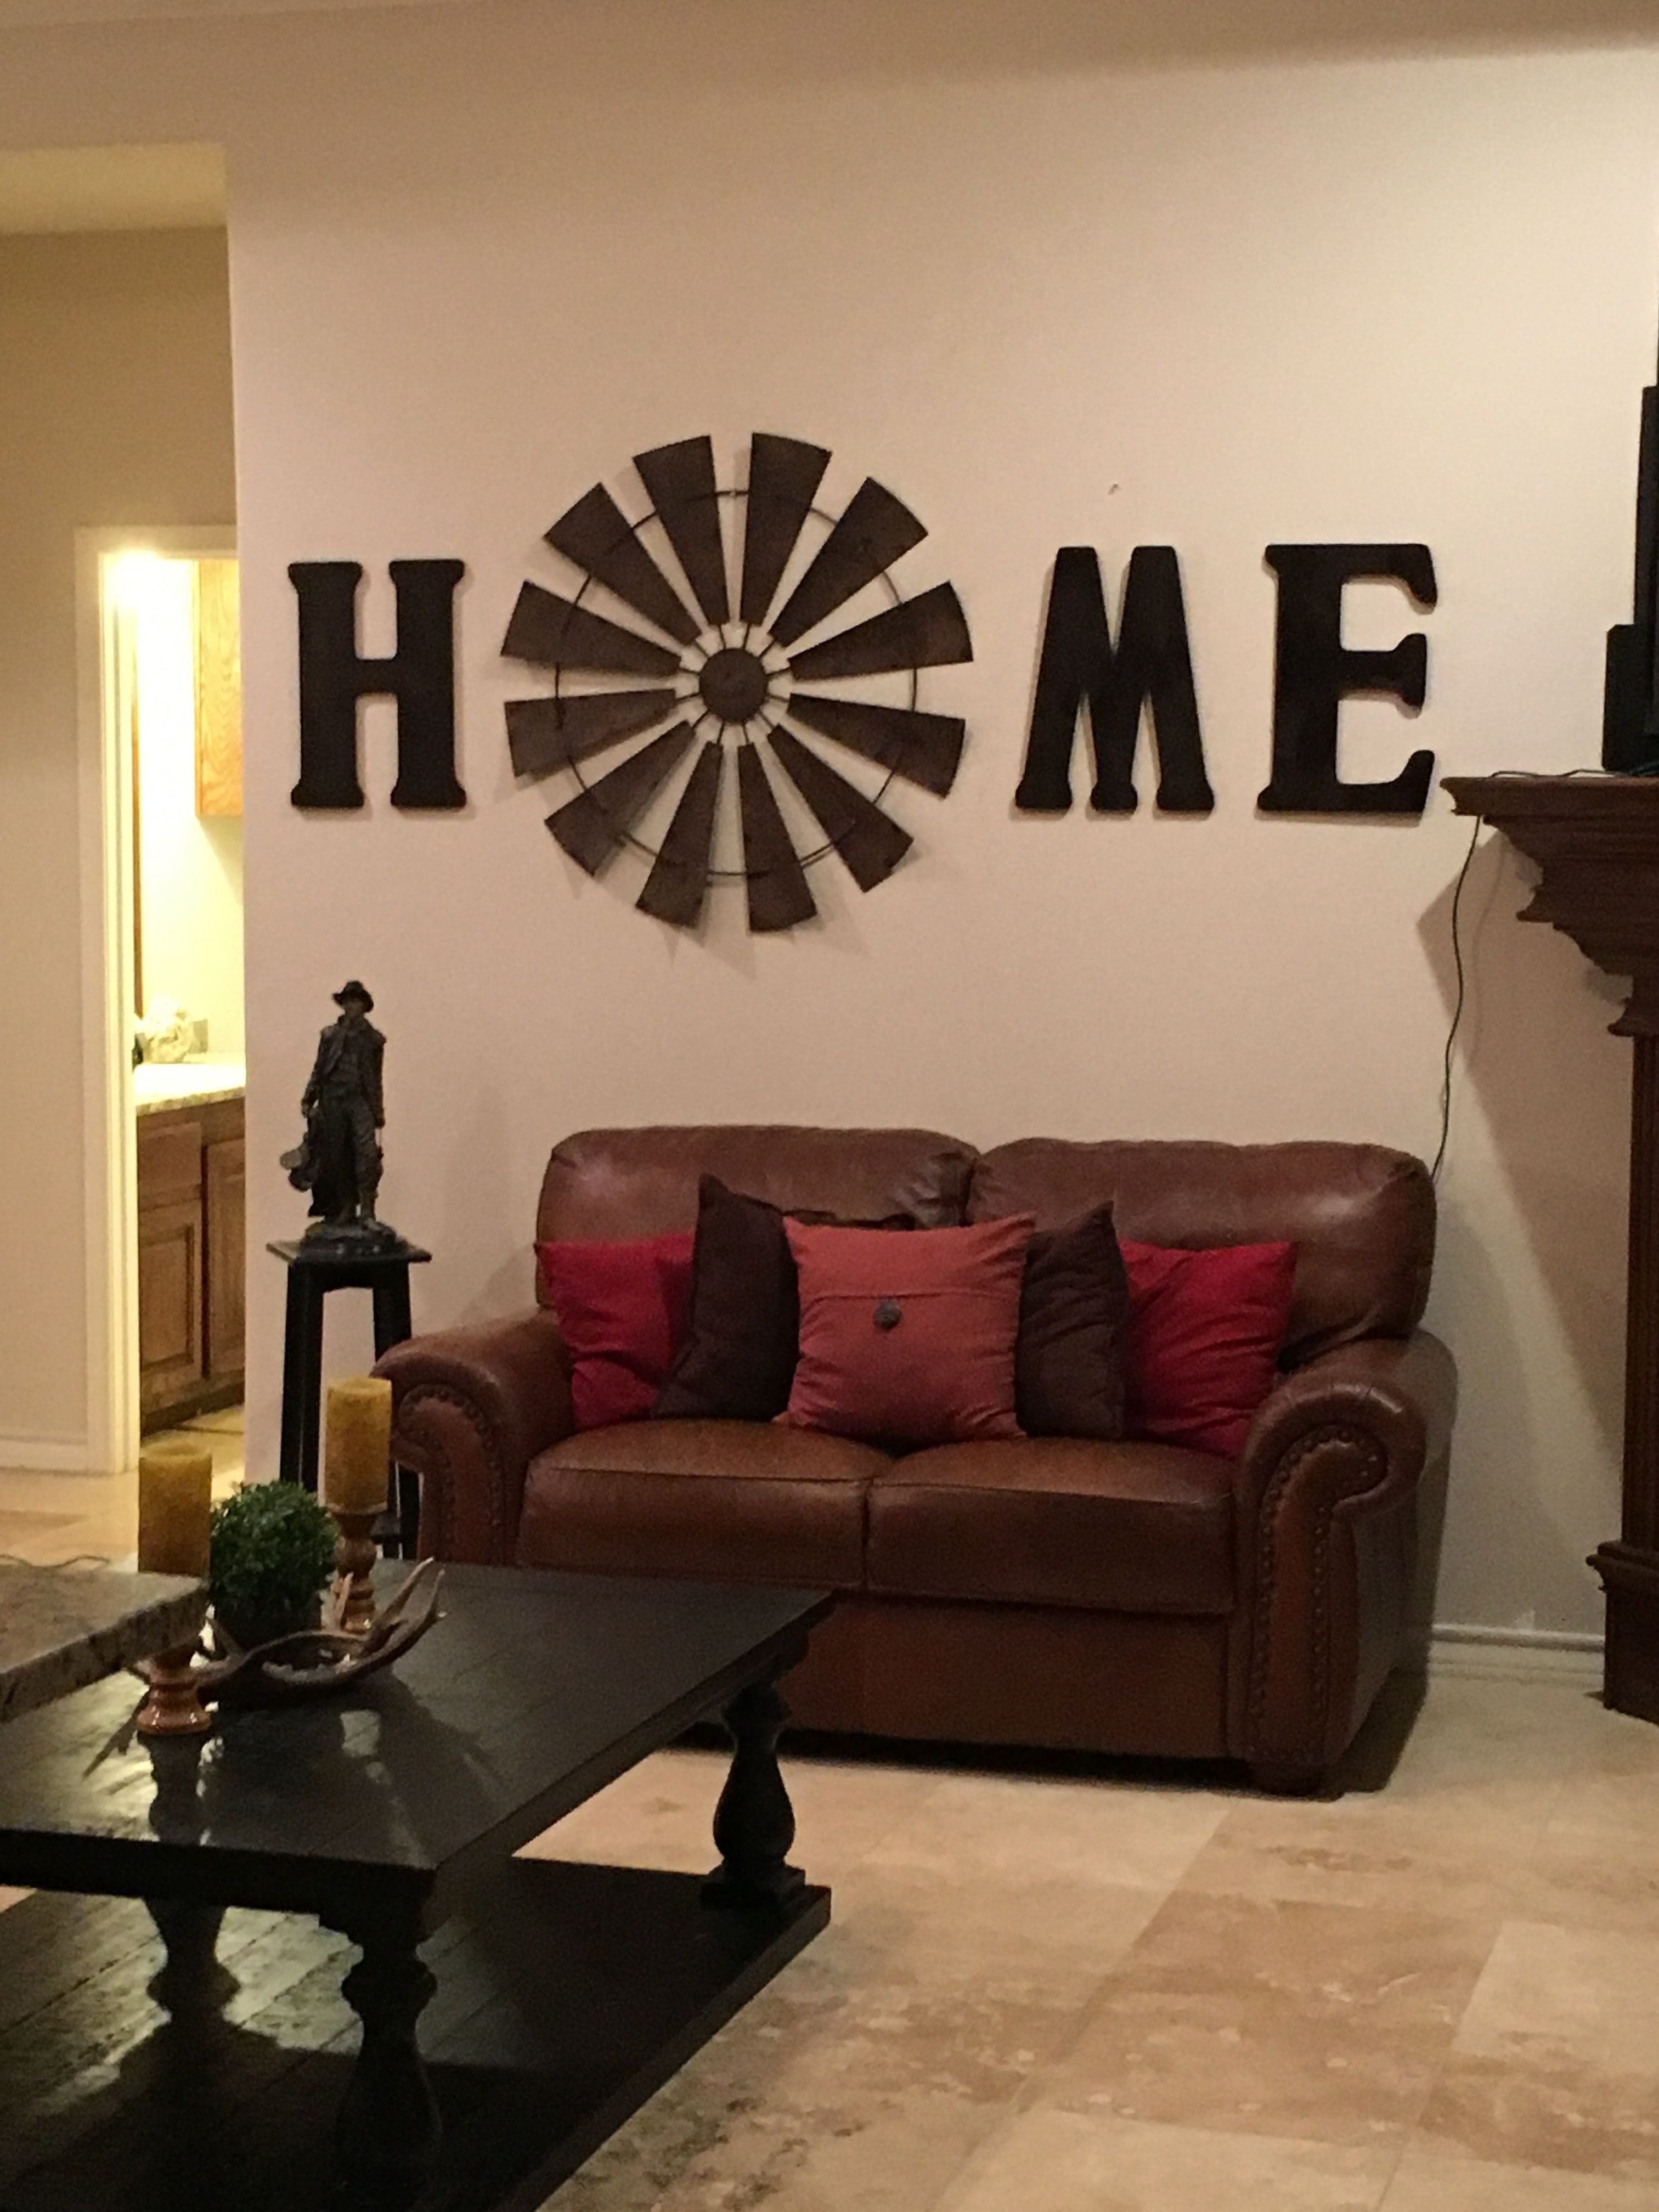 Windmill Wall Decor Home Living Room Inspiration Of Windmill Wall Intended For 2018 Windmill Wall Art (Gallery 3 of 20)